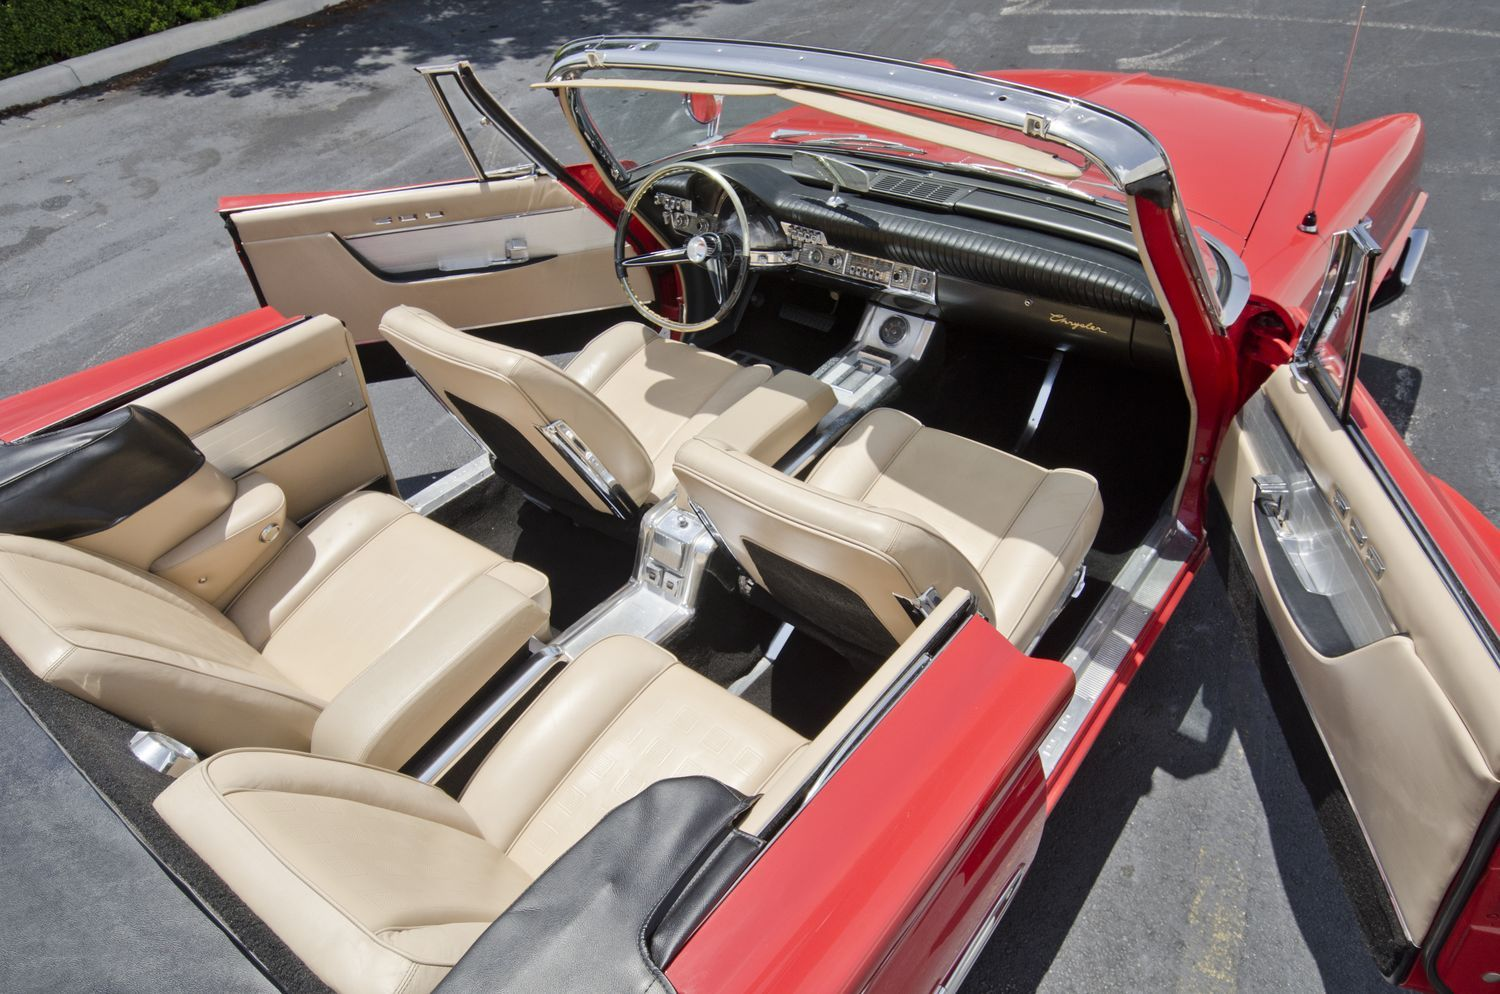 1959 plymouth sport fury interior related keywords - Award Winning Chrysler 300g Tops Verde Museum Sale At 130